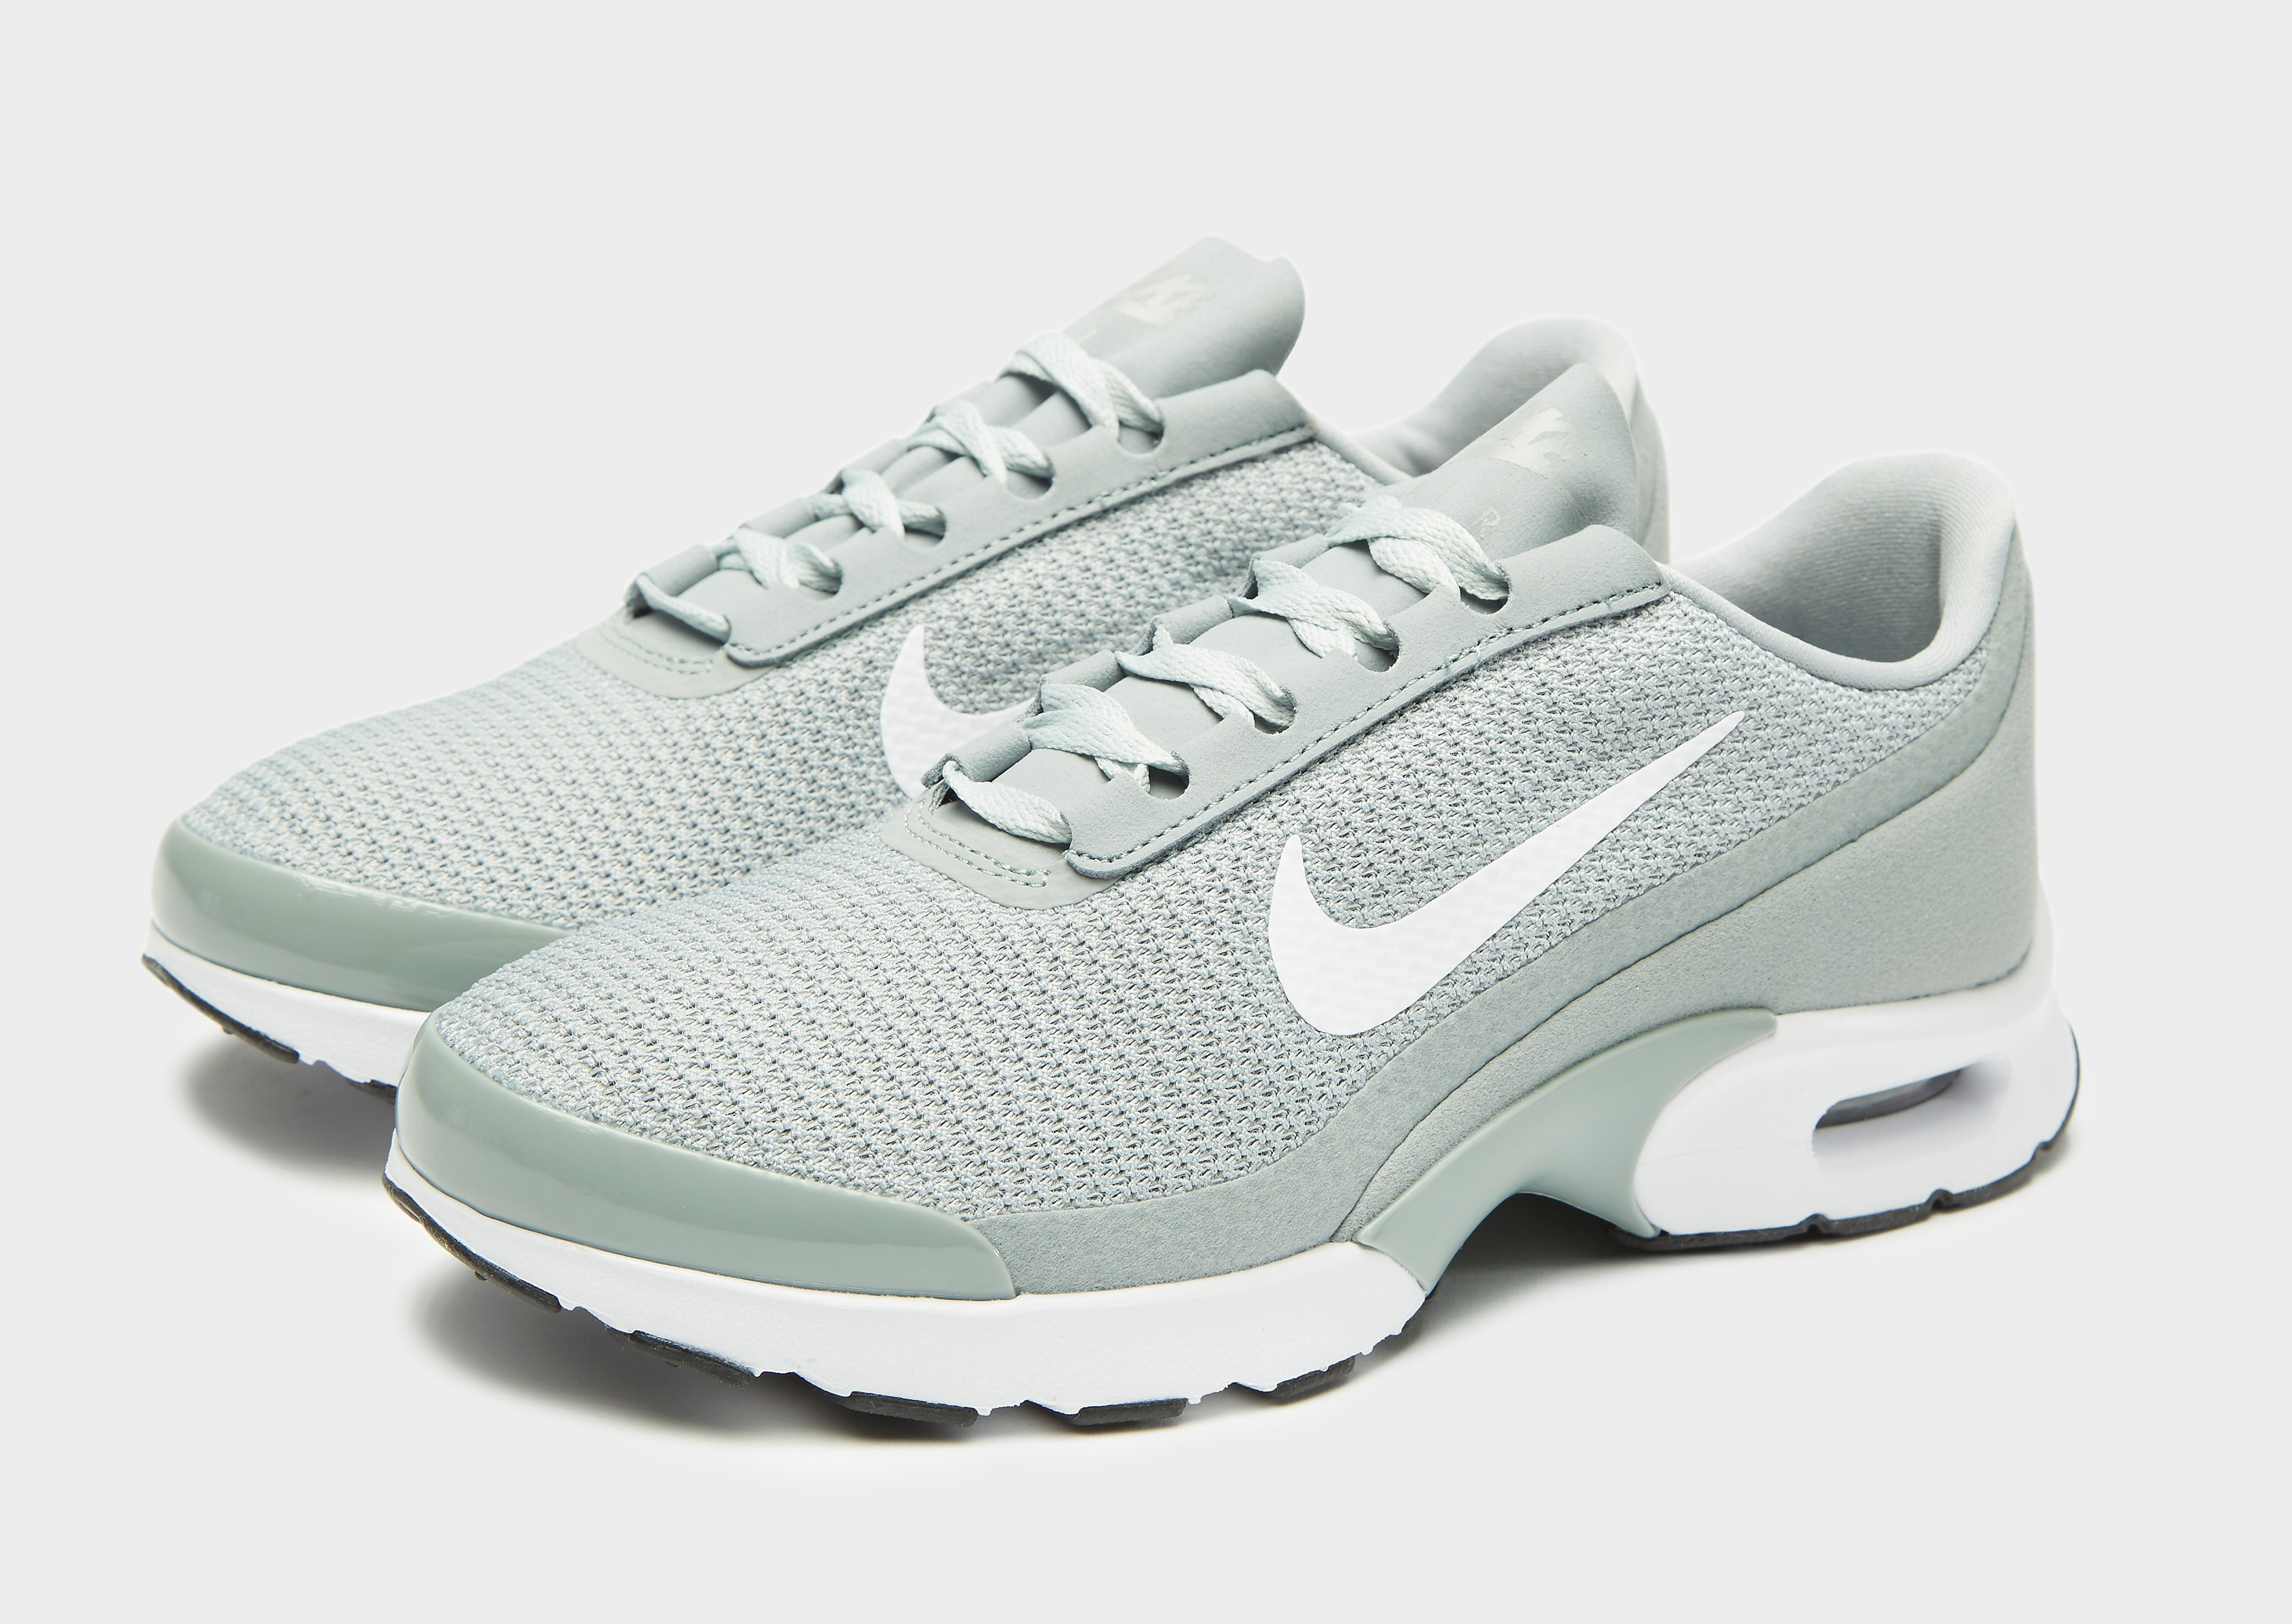 Nike Air Max Jewel Essential Women's